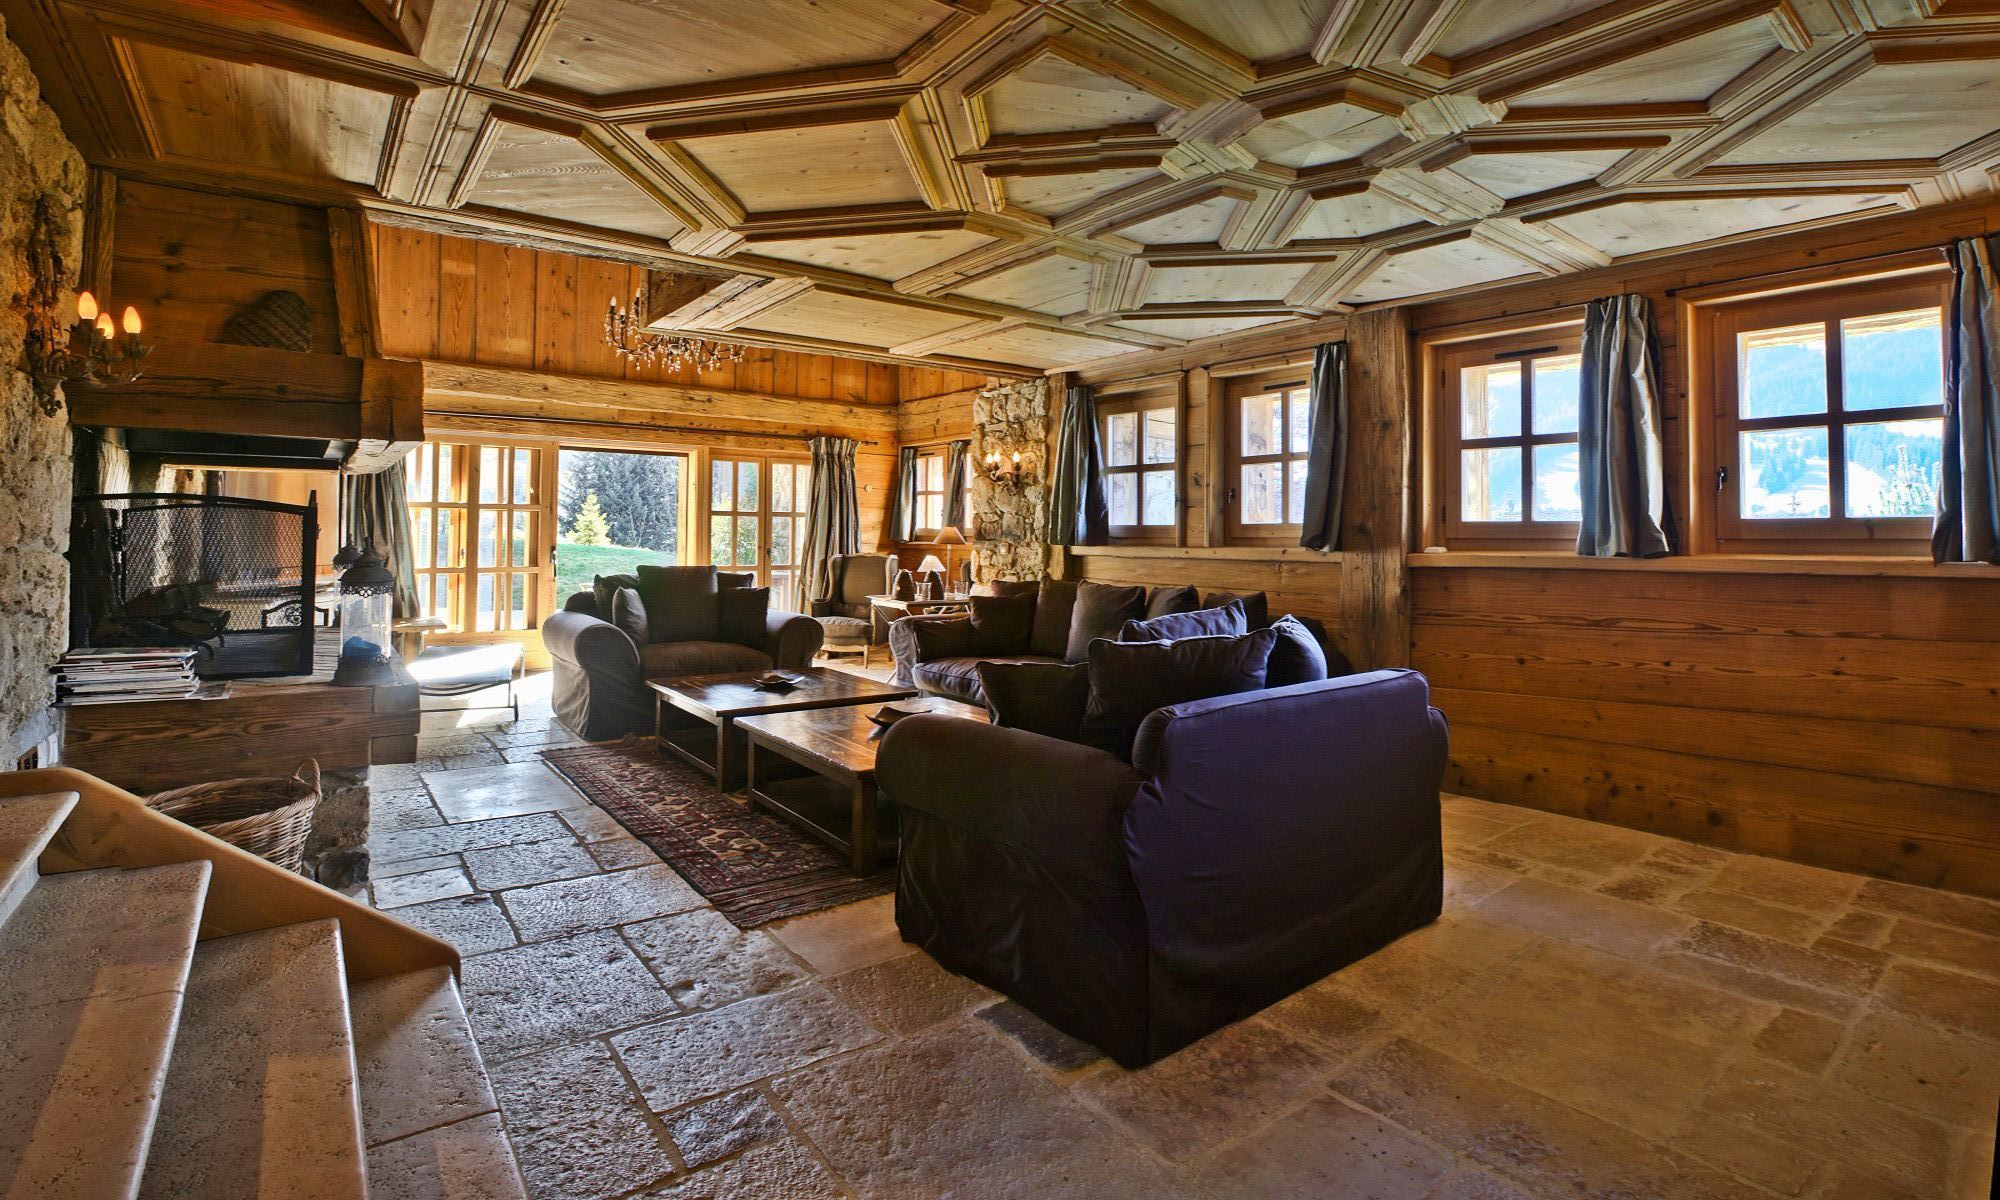 Single Family Home for Sale at Megève Mont d'Arbois Chalet Opale Megeve, Rhone-Alpes 74120 France